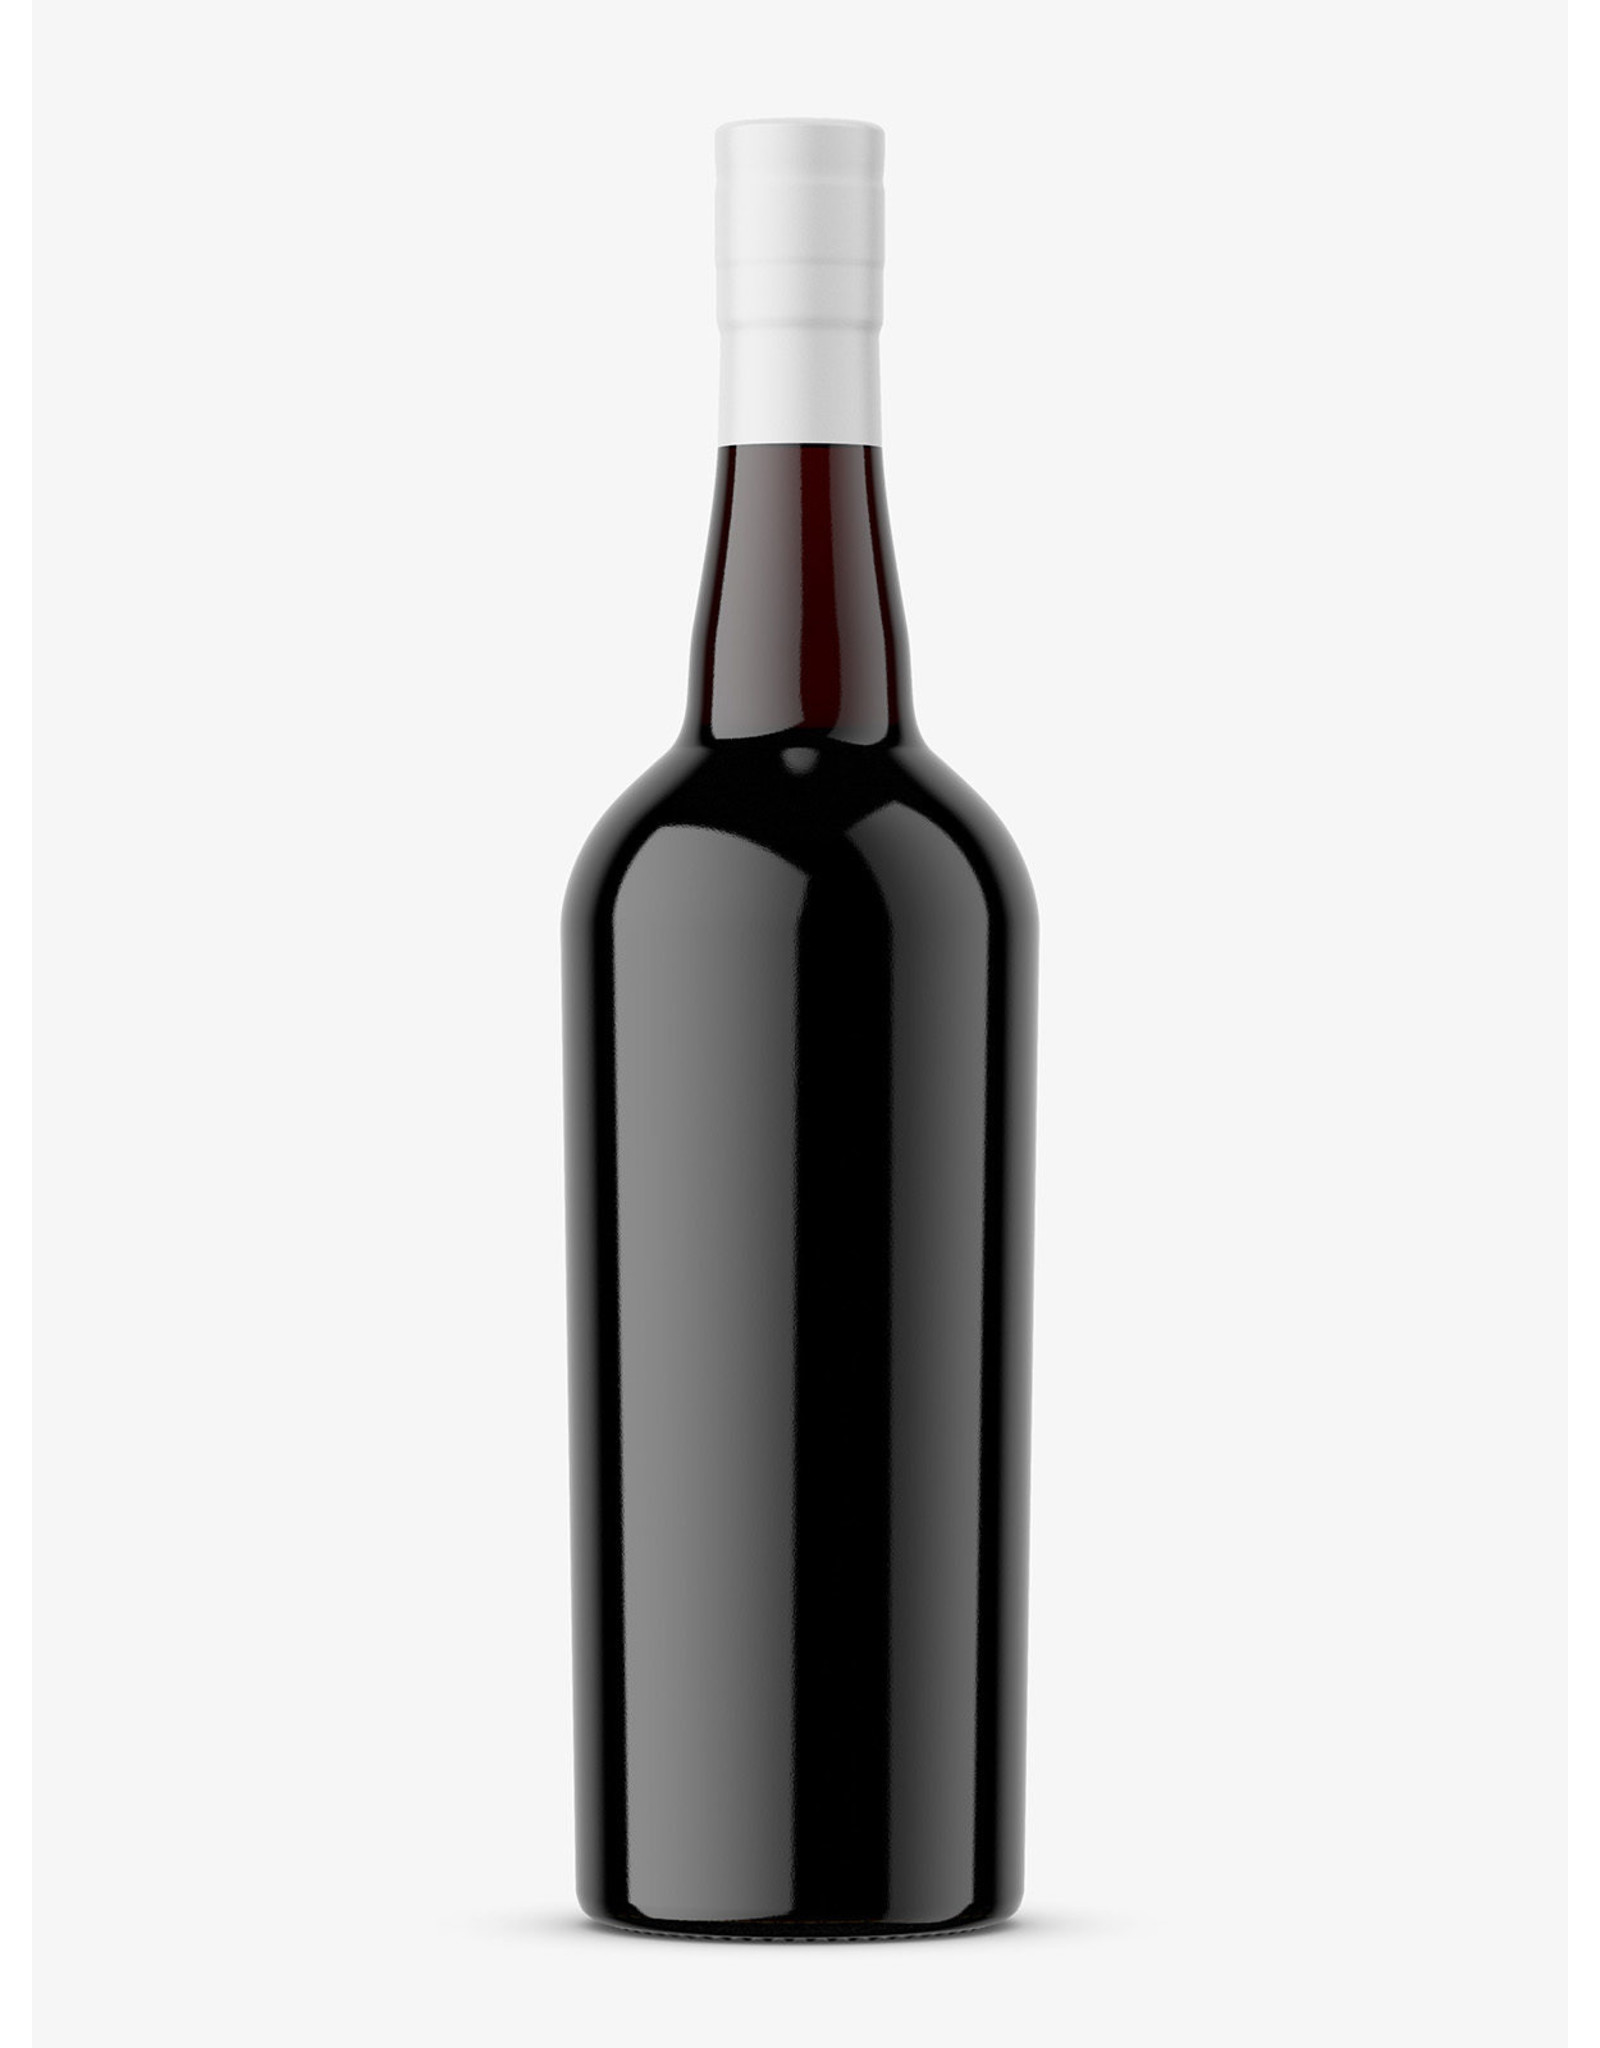 Dujac Dujac Fils et Pere Chambolle Musigny 2018